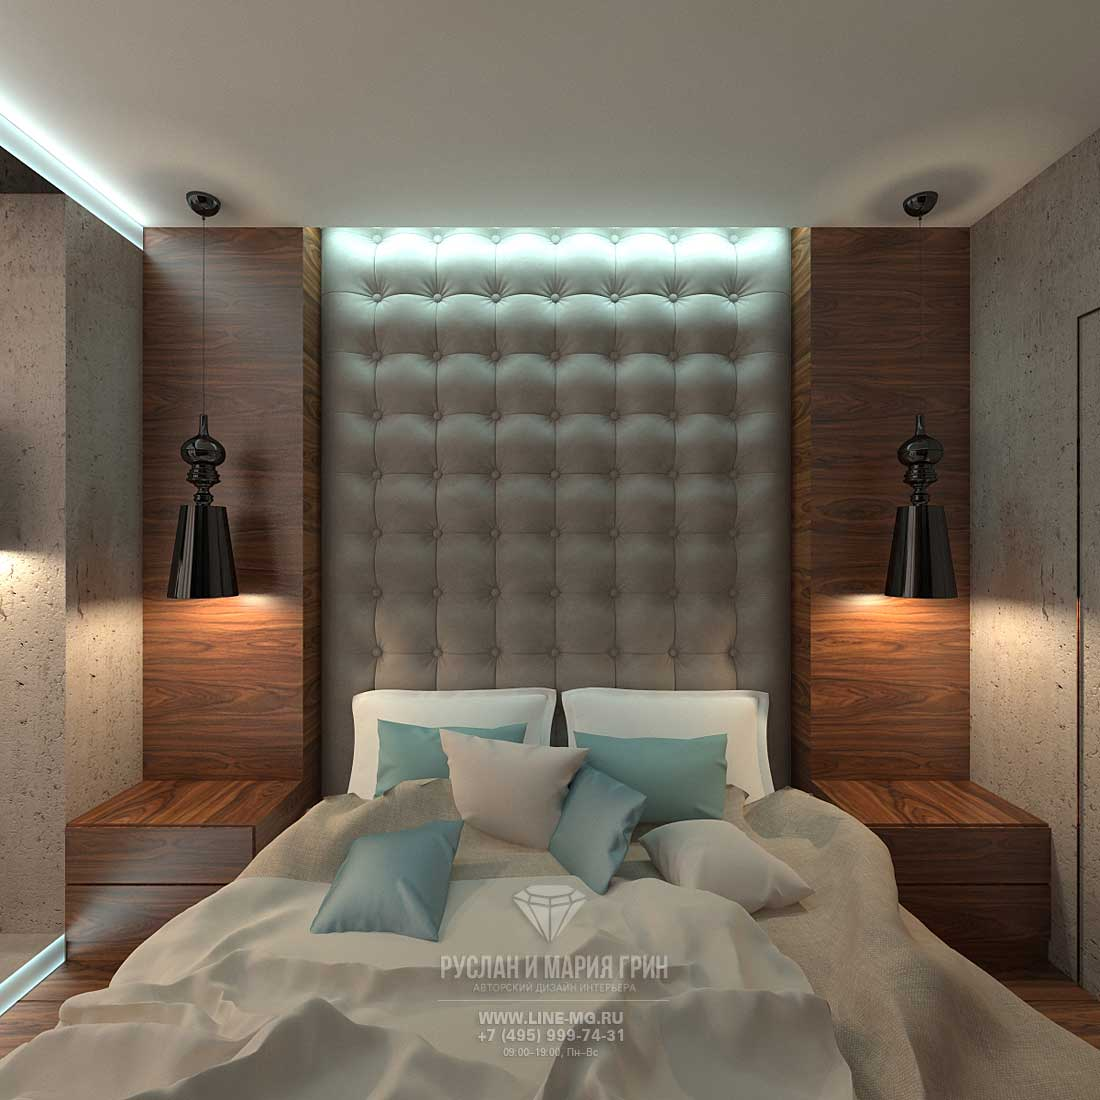 The design of modern bedroom. Photos 2015